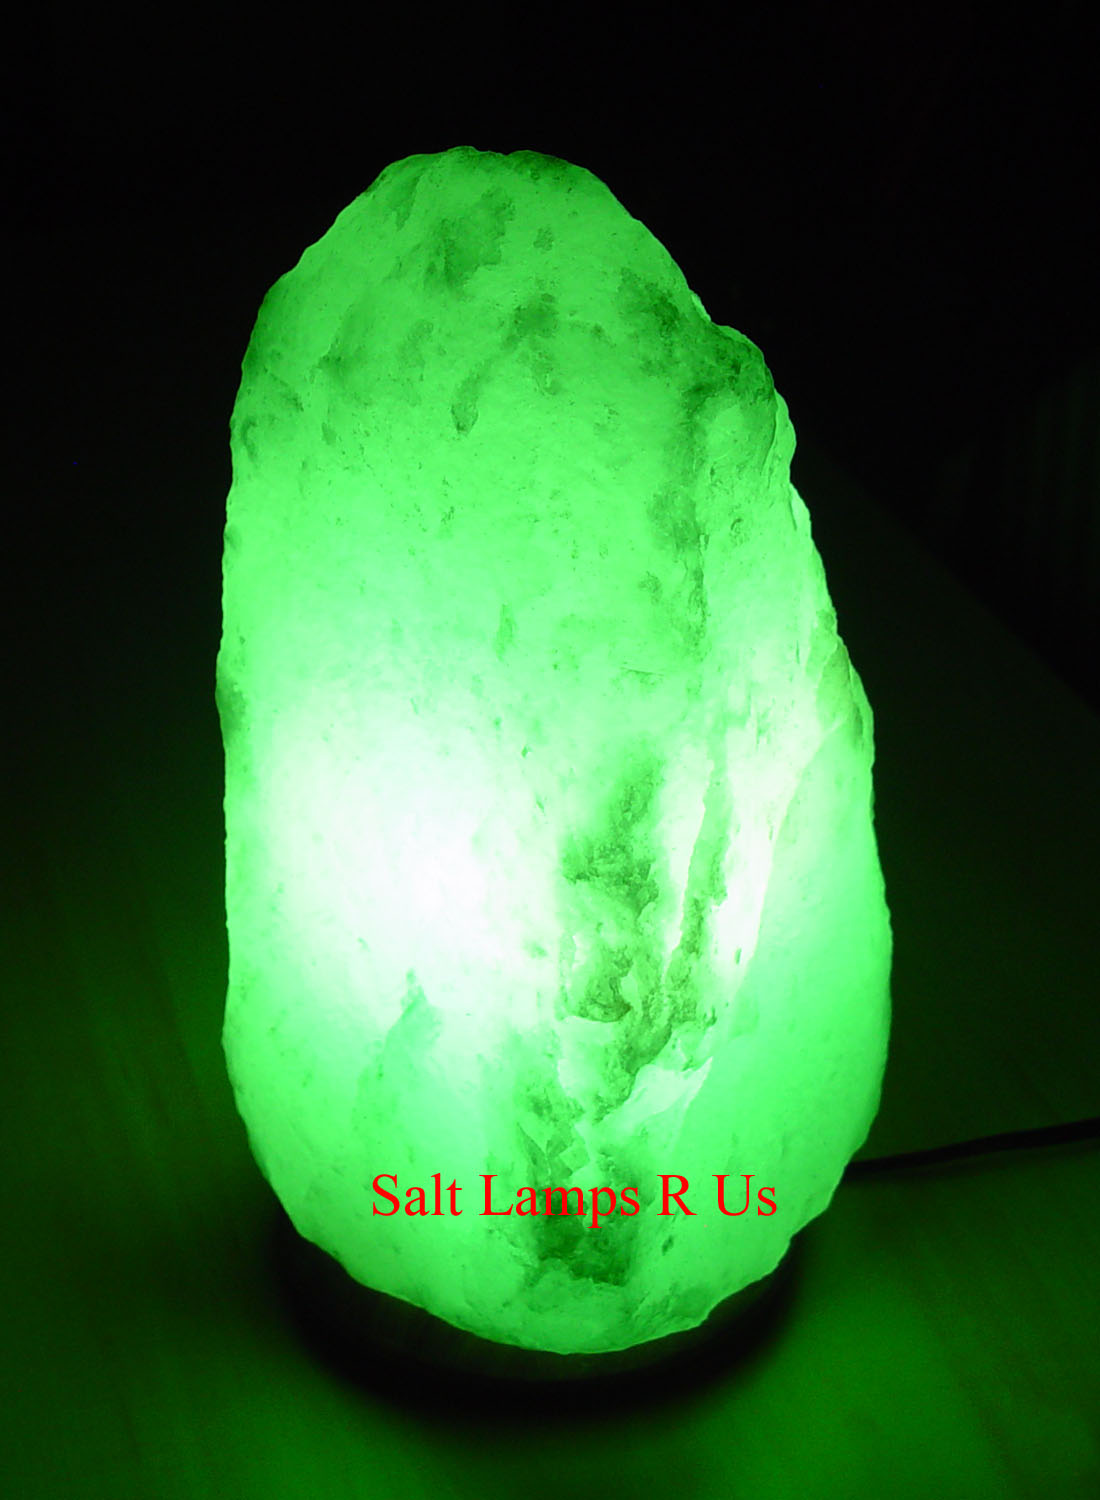 White Salt Lamp Himalayan Large Attached Wood Base 4-6kg LA702 Saltlamps-R-Us Co.Uk